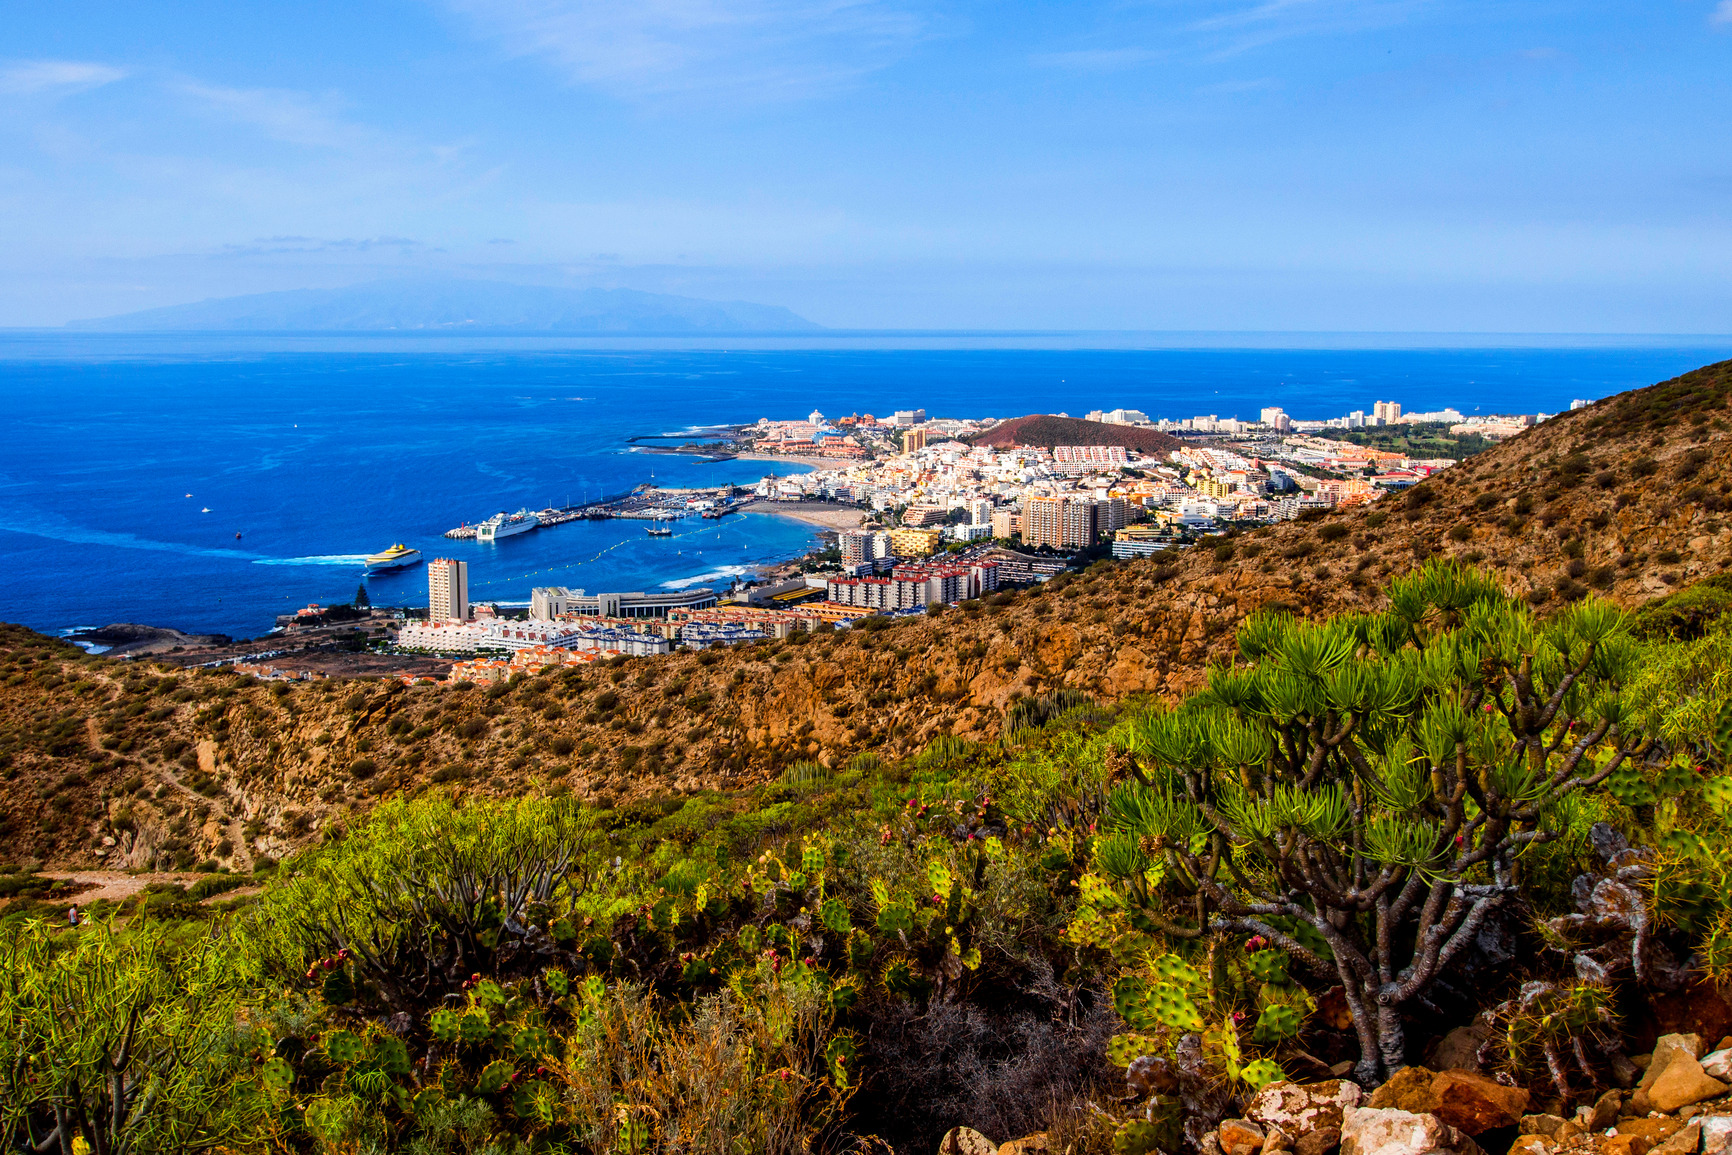 View from Guaza mountain, Tenerife, Canary Islands, Spain, Europe